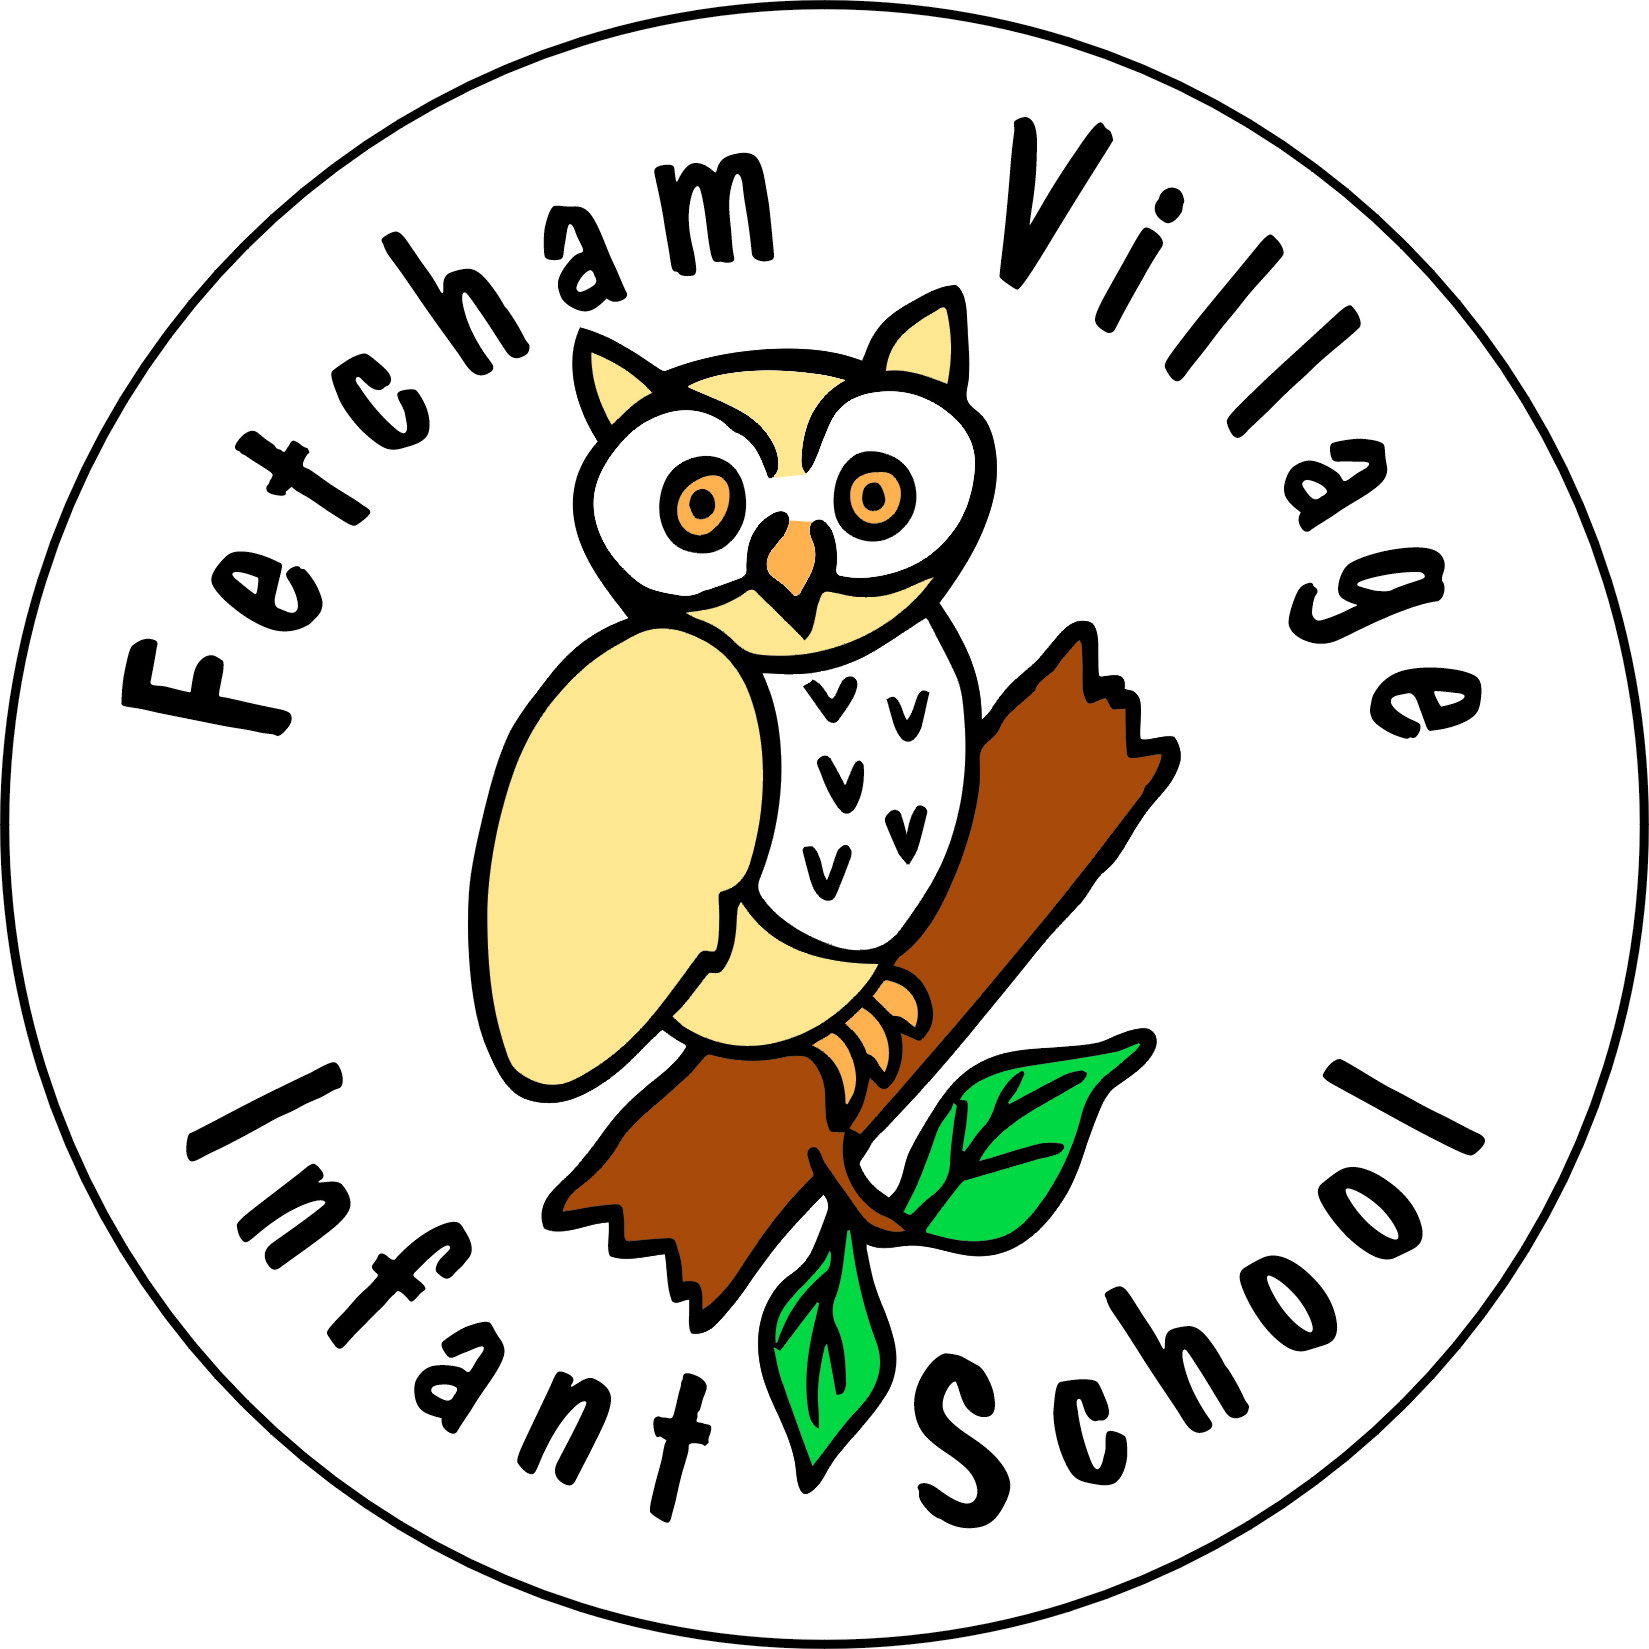 Fetcham Village Infant School